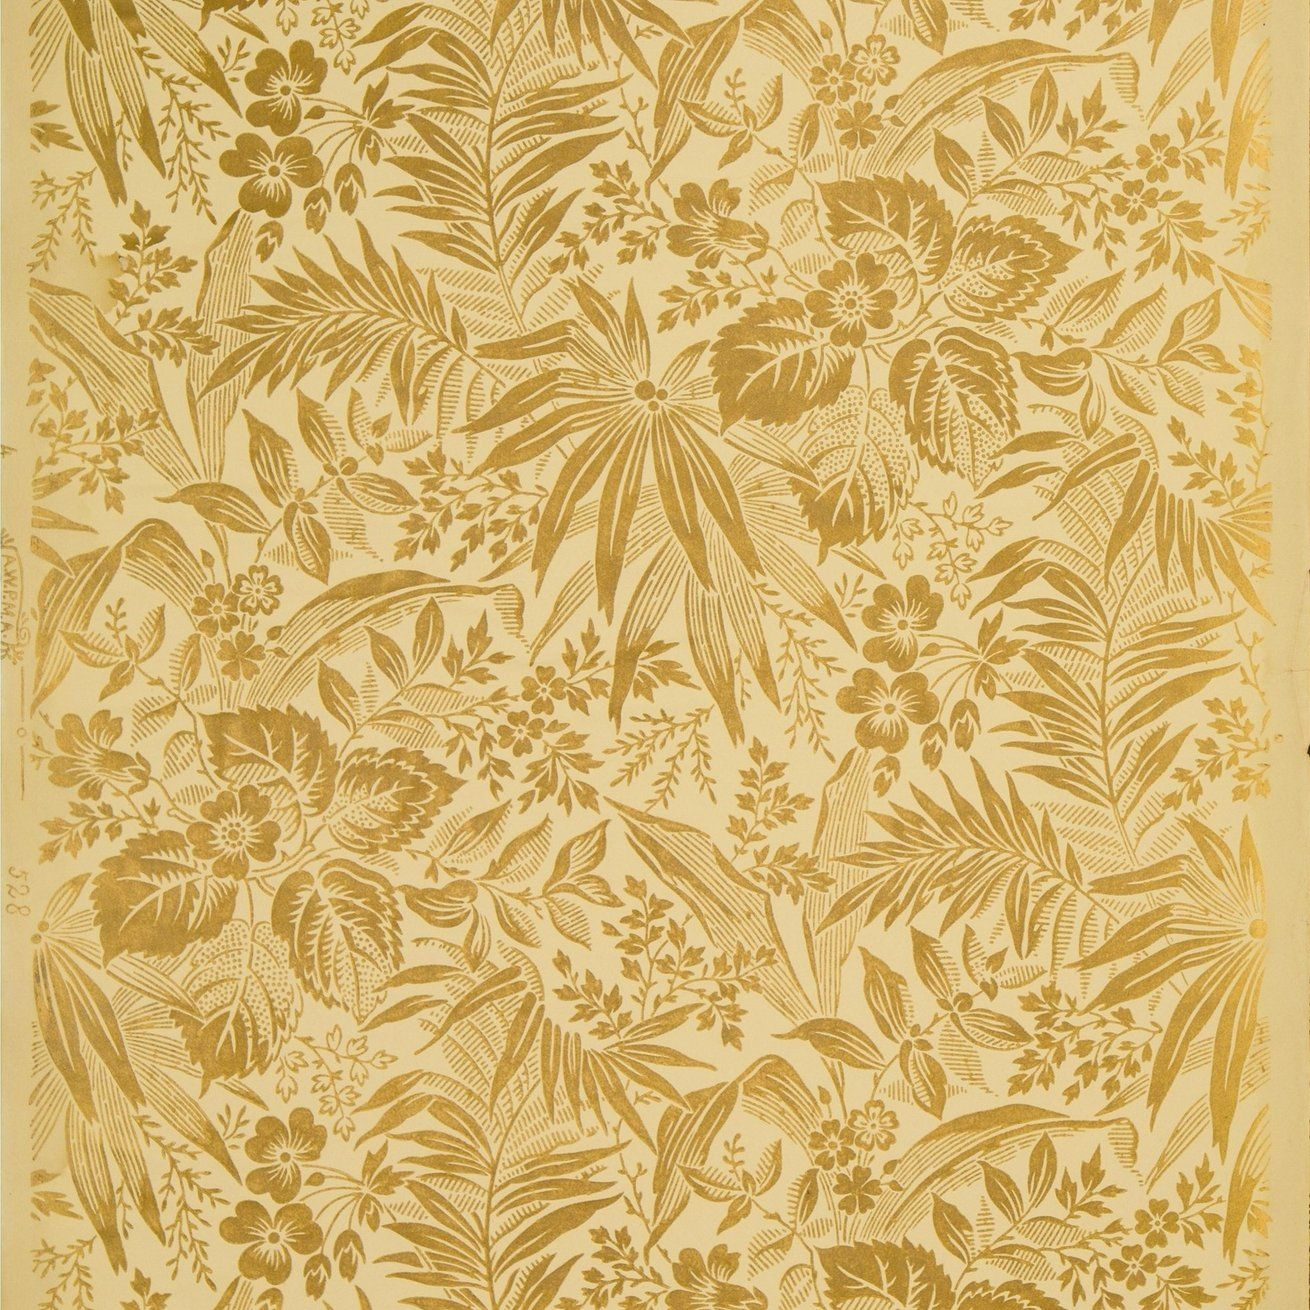 Gilt Flowers and Leaves Antique Wallpaper Remnant